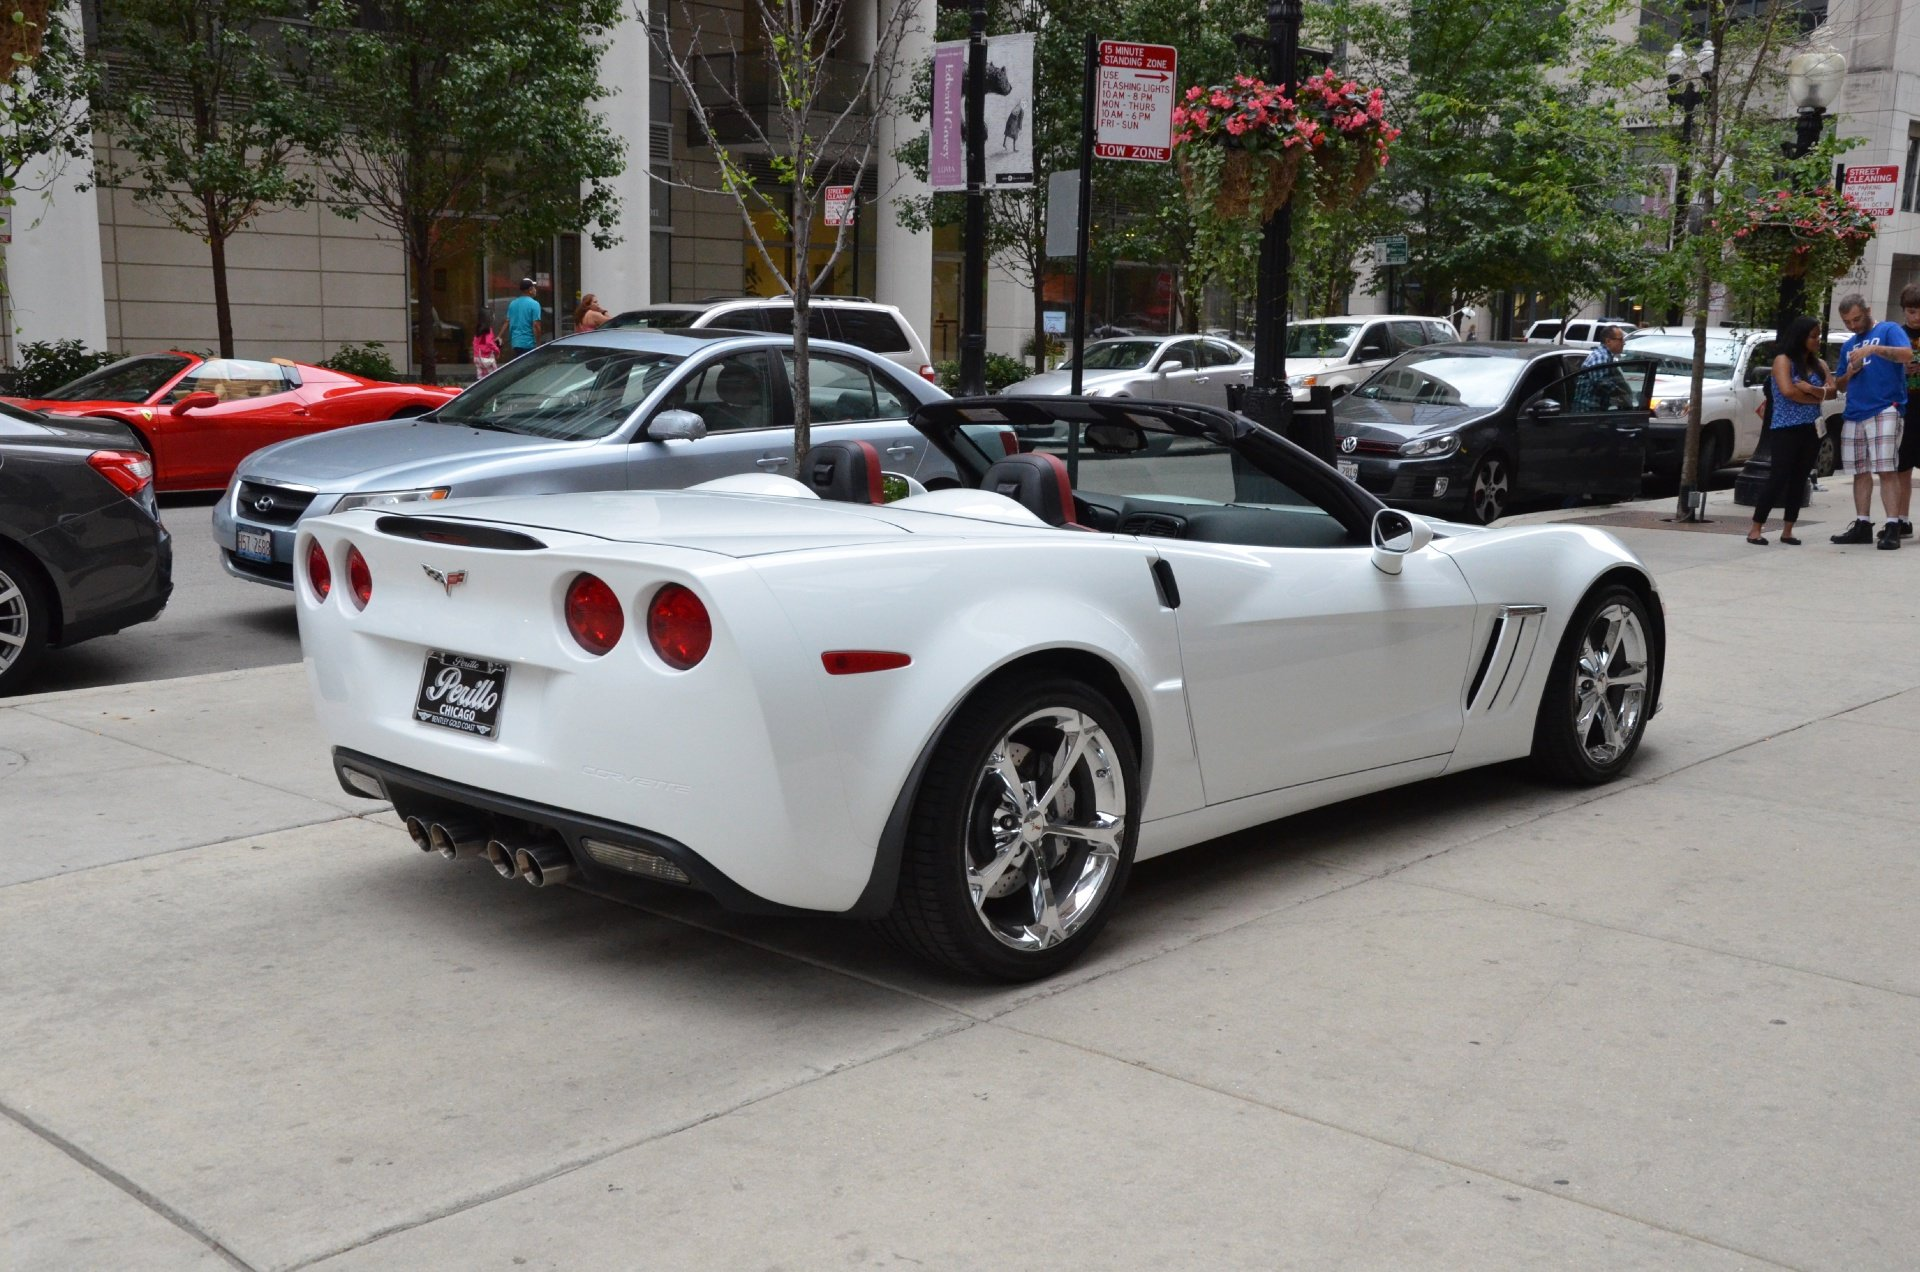 2013 chevrolet corvette c6 convertible white z16 grand. Black Bedroom Furniture Sets. Home Design Ideas